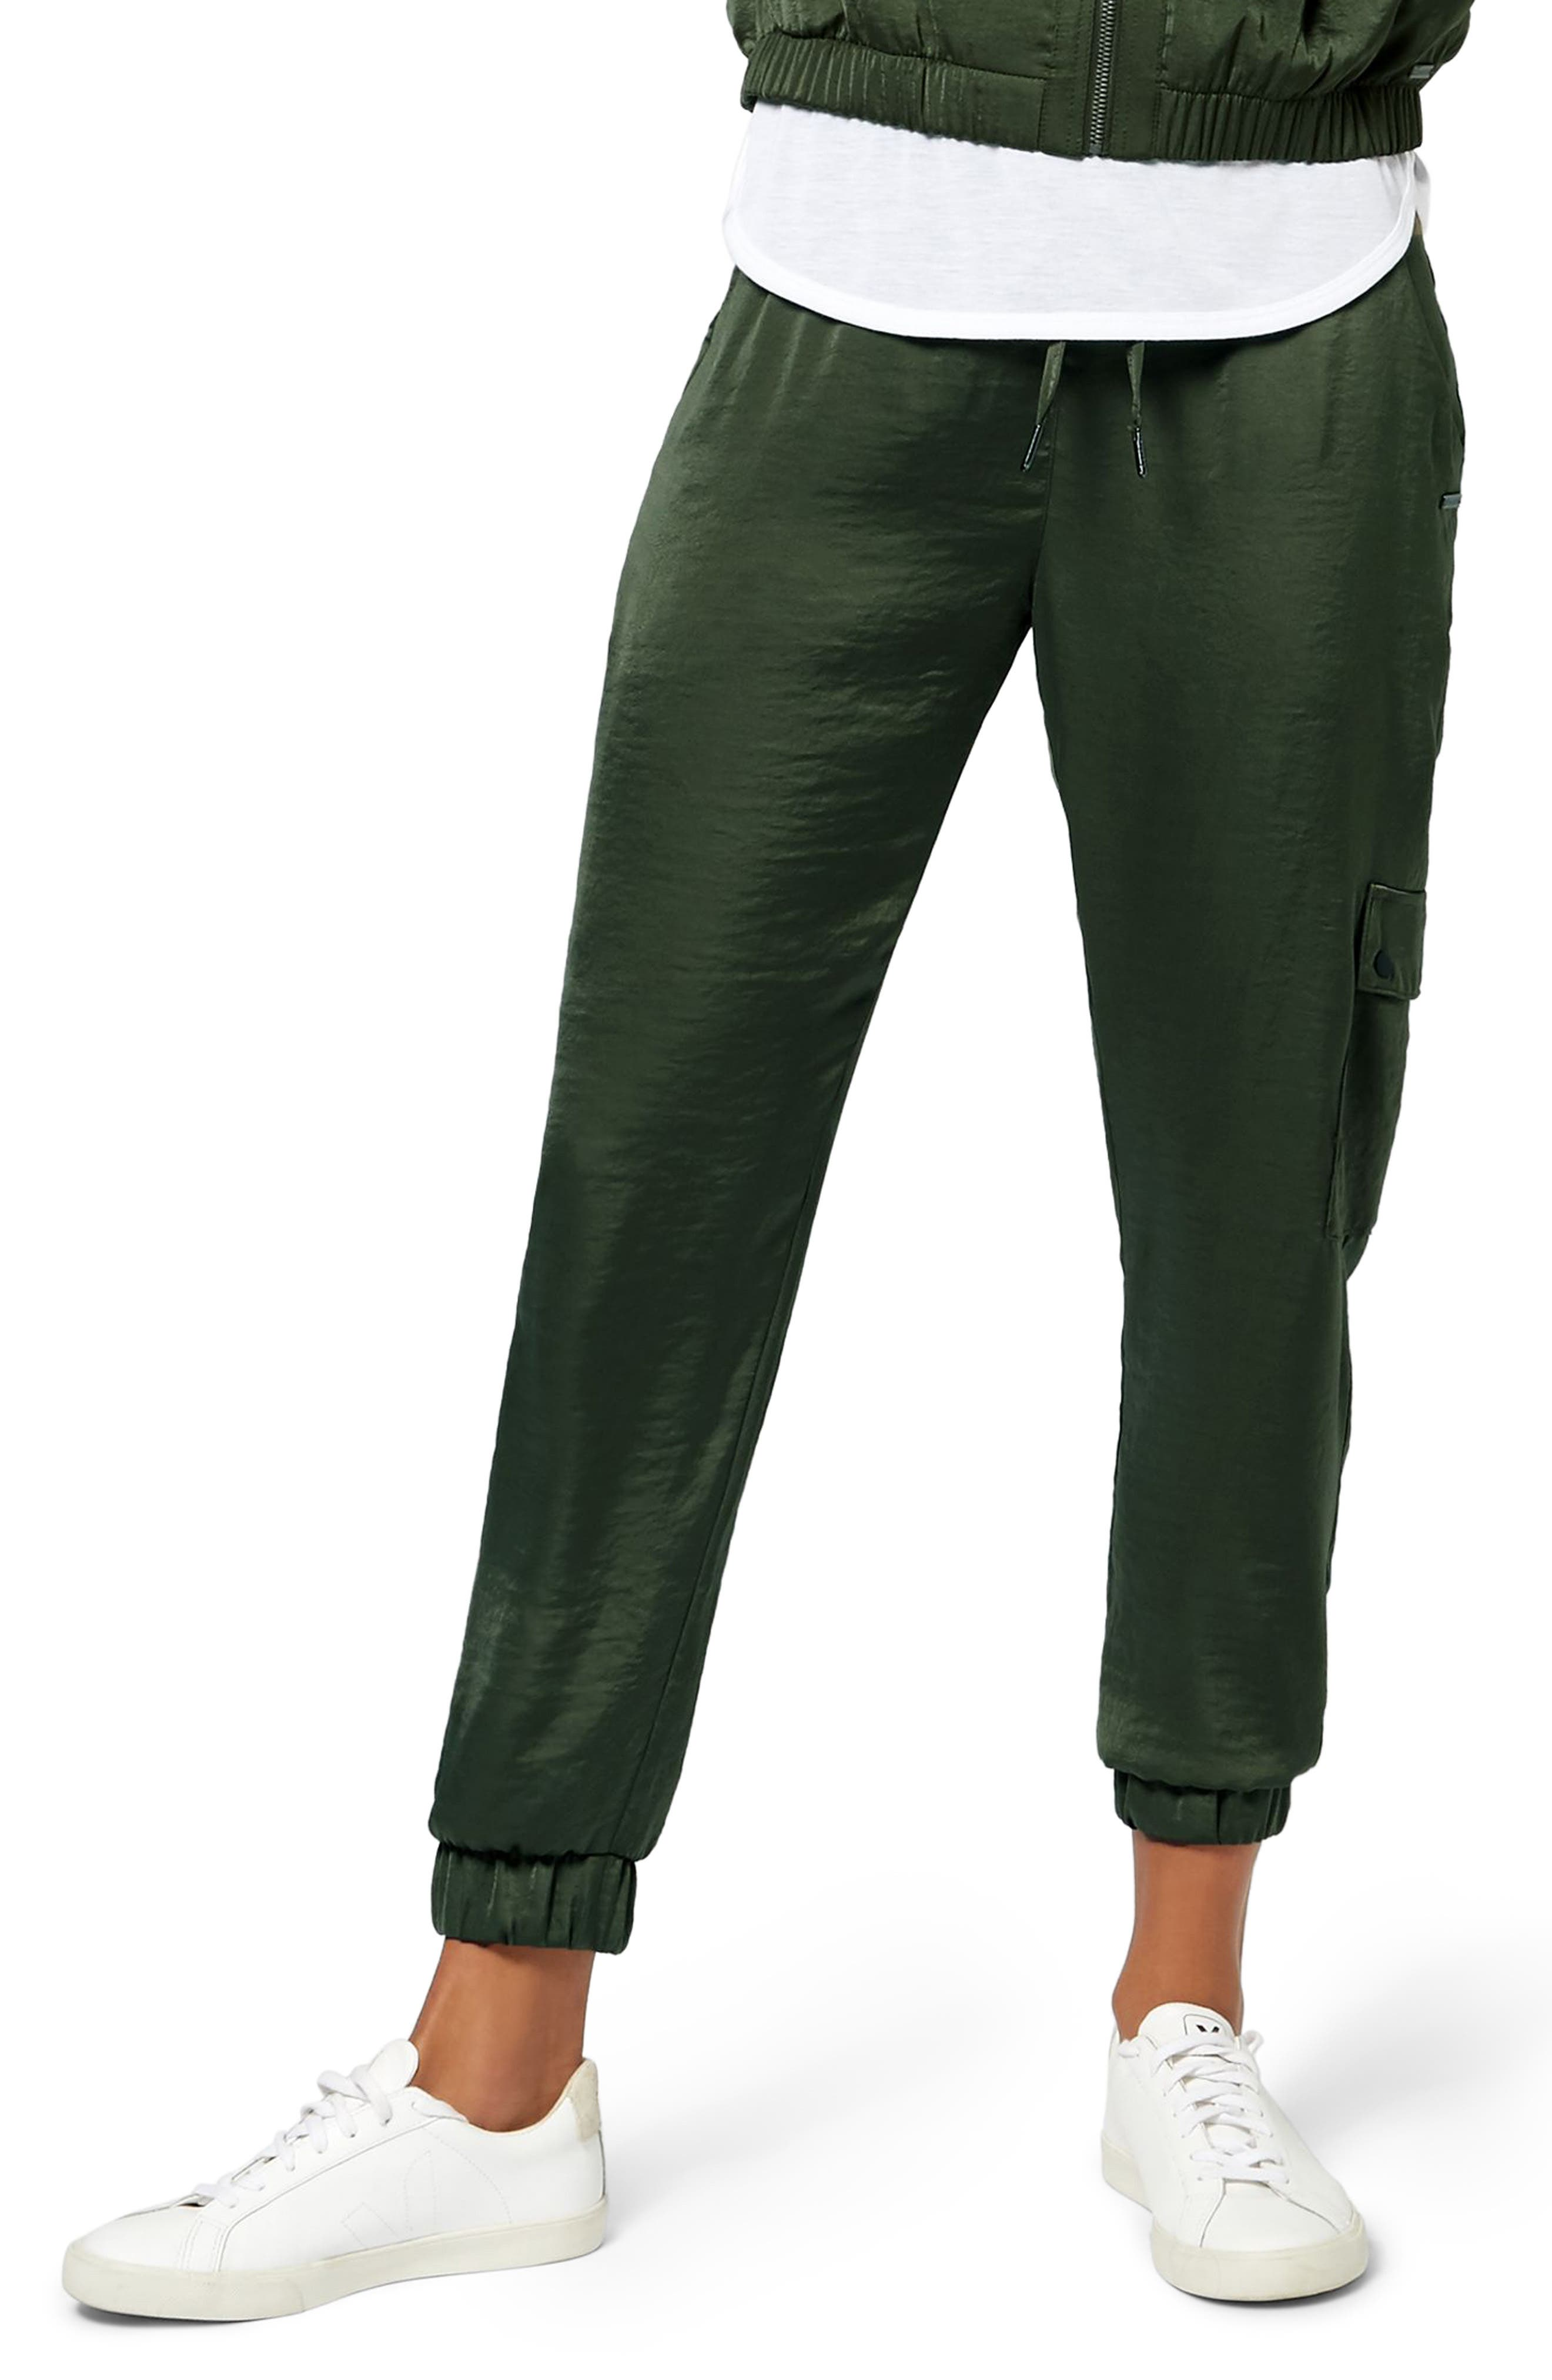 Cargo Luxe Ankle Pants,                         Main,                         color, OLIVE